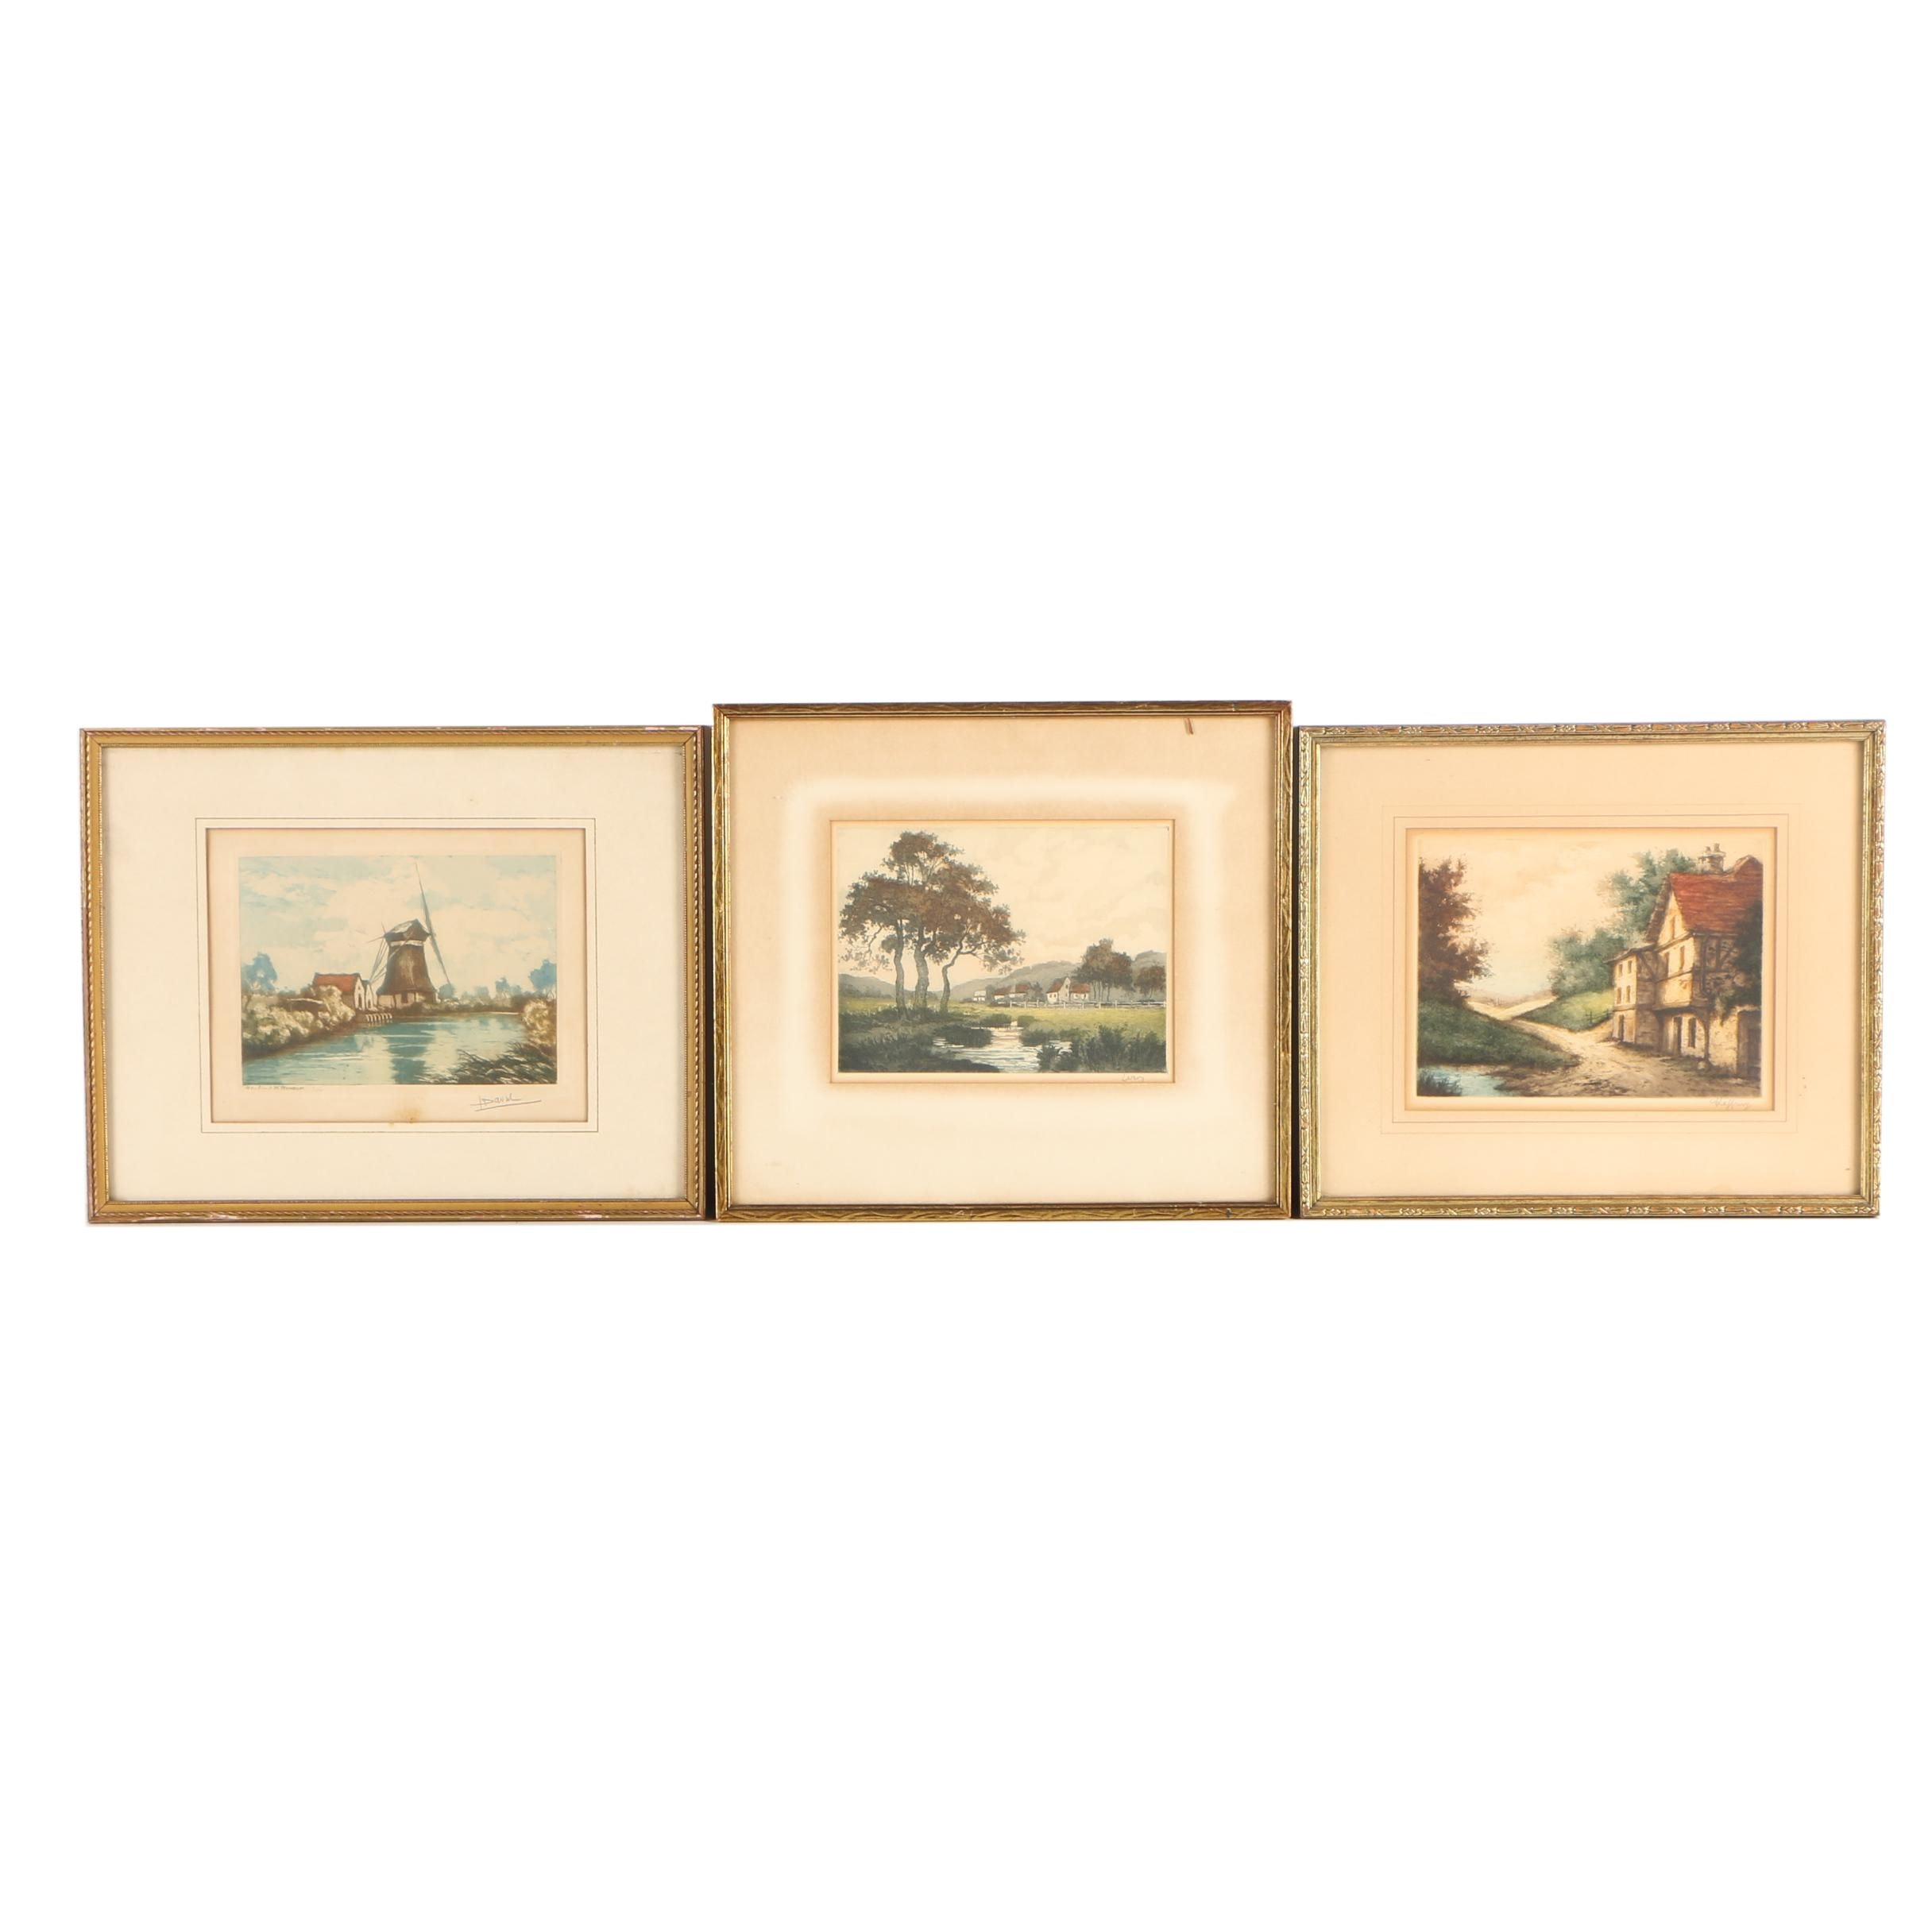 Color Etchings on Paper of Dutch Villages